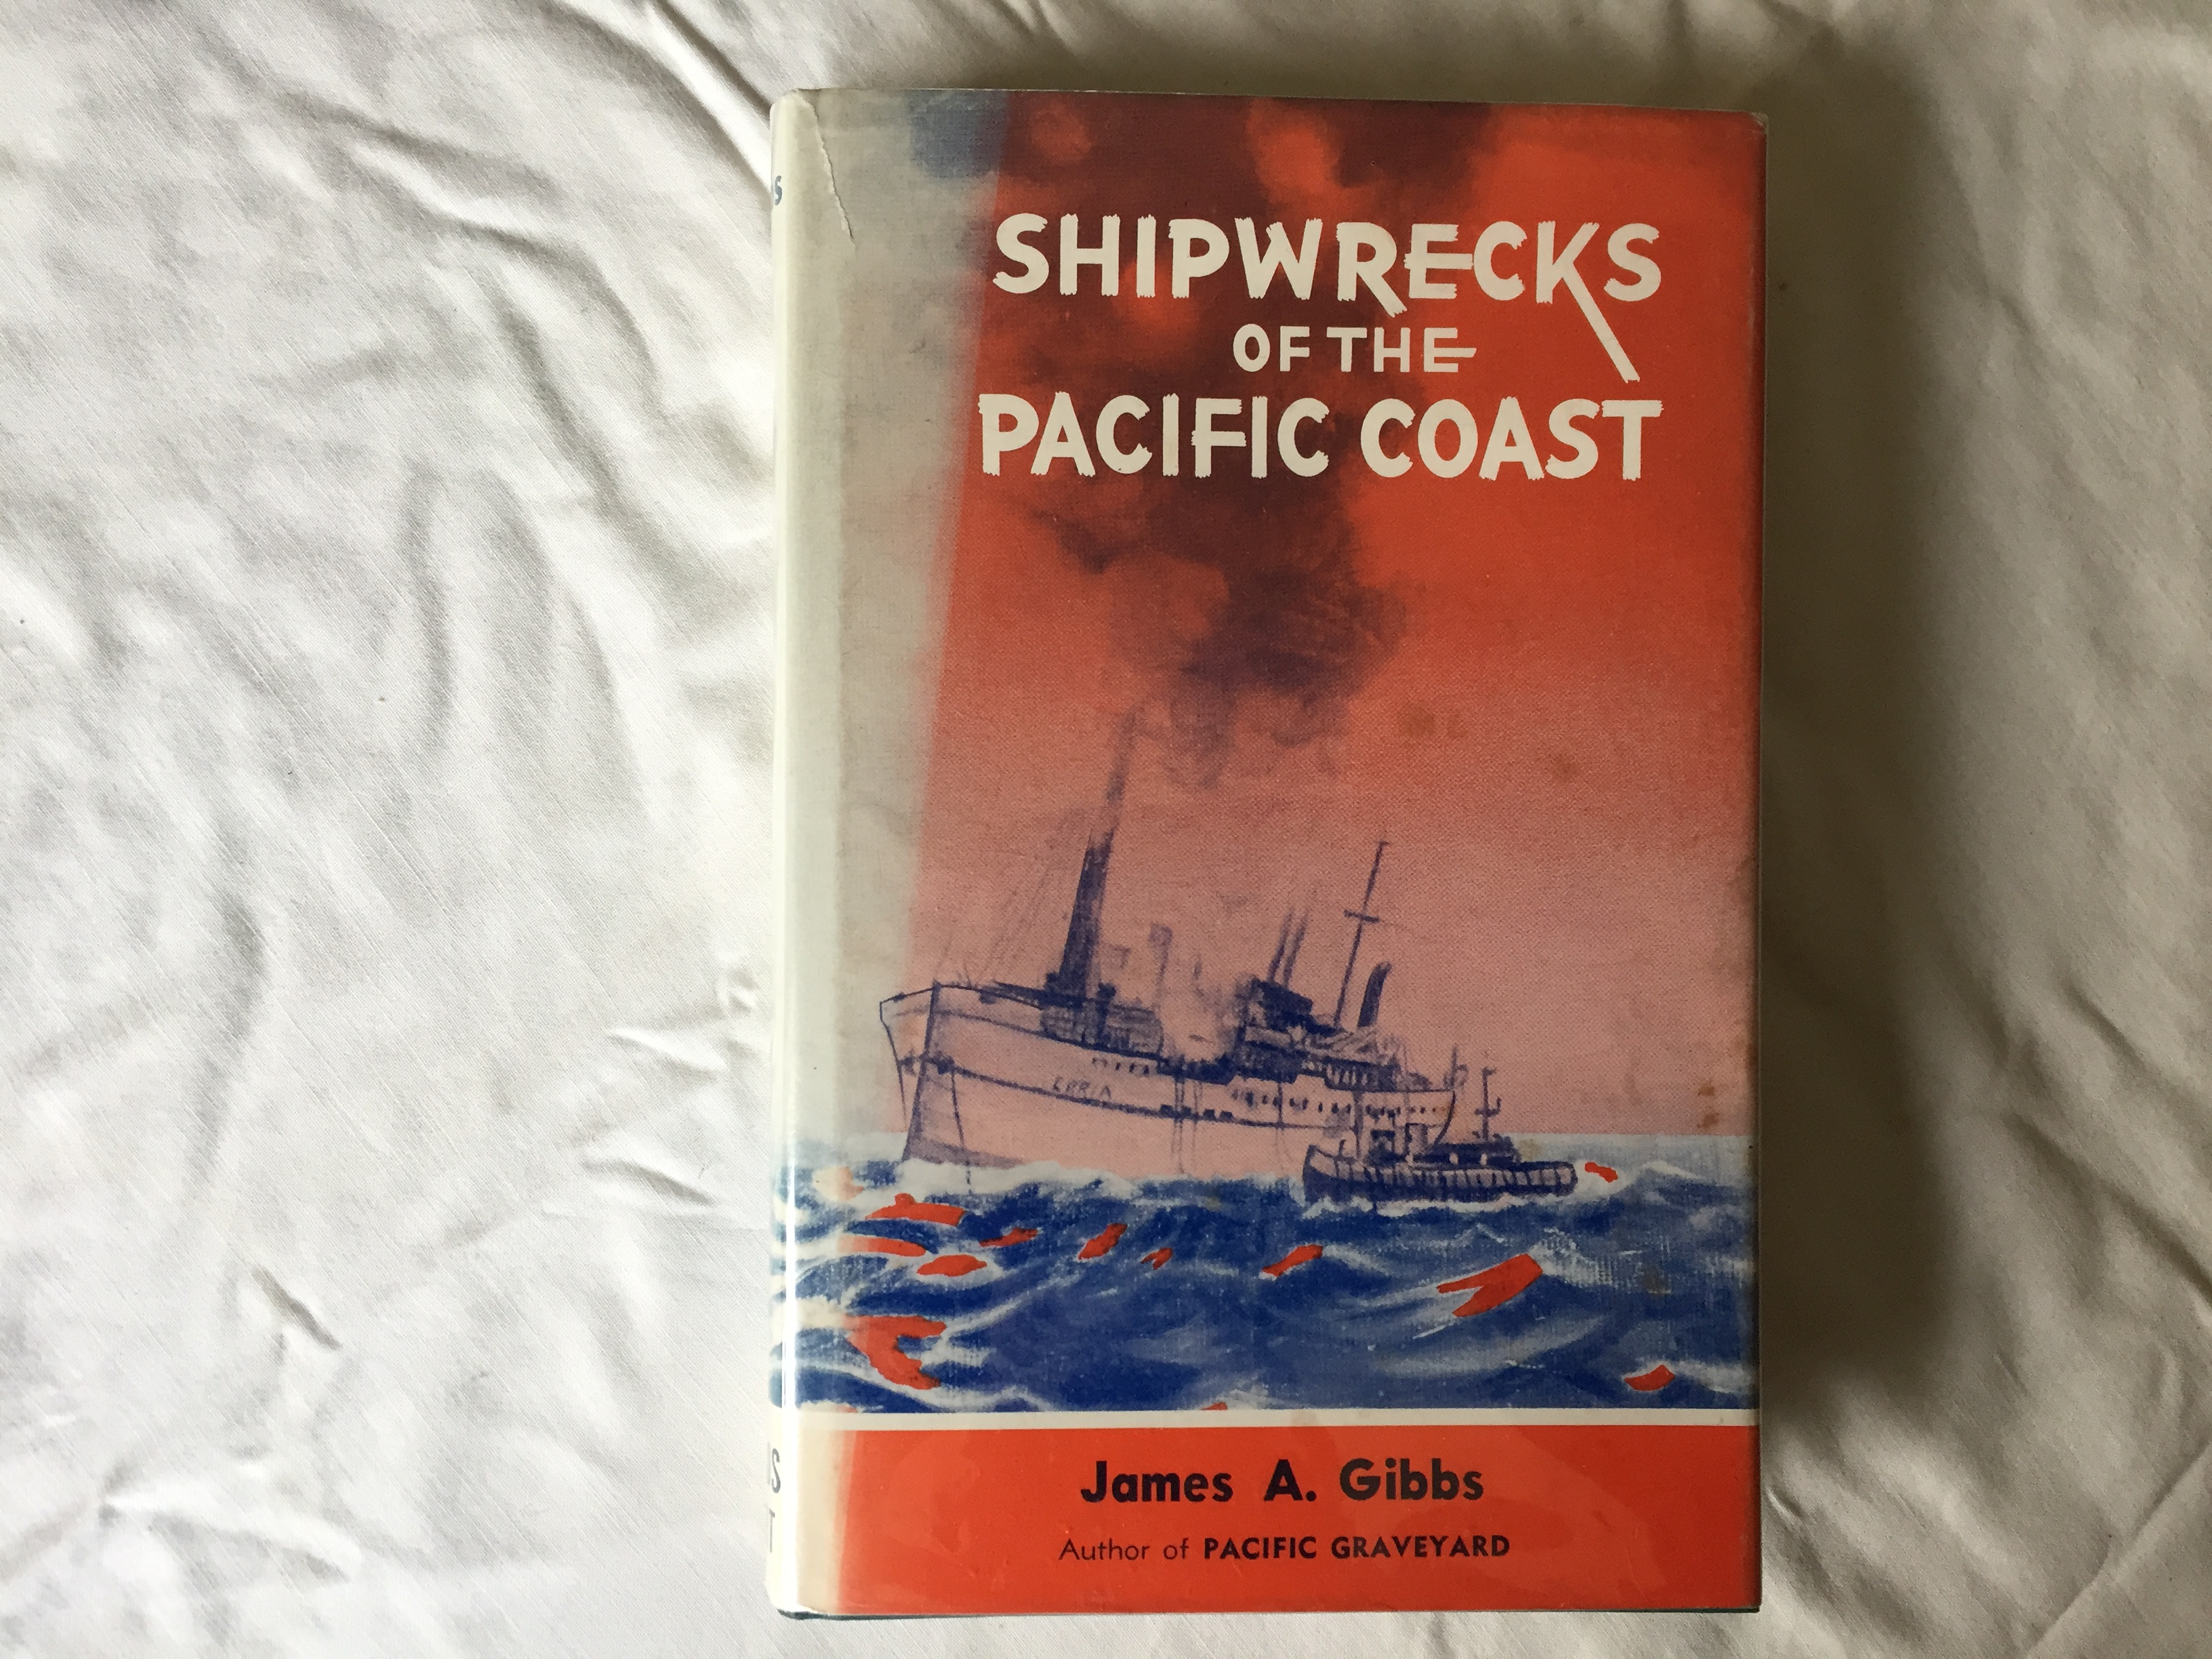 MARITIME BOOK 'SHIPWRECKS OF THE PACIFIC COAST' BY JAMES A. GIBBS